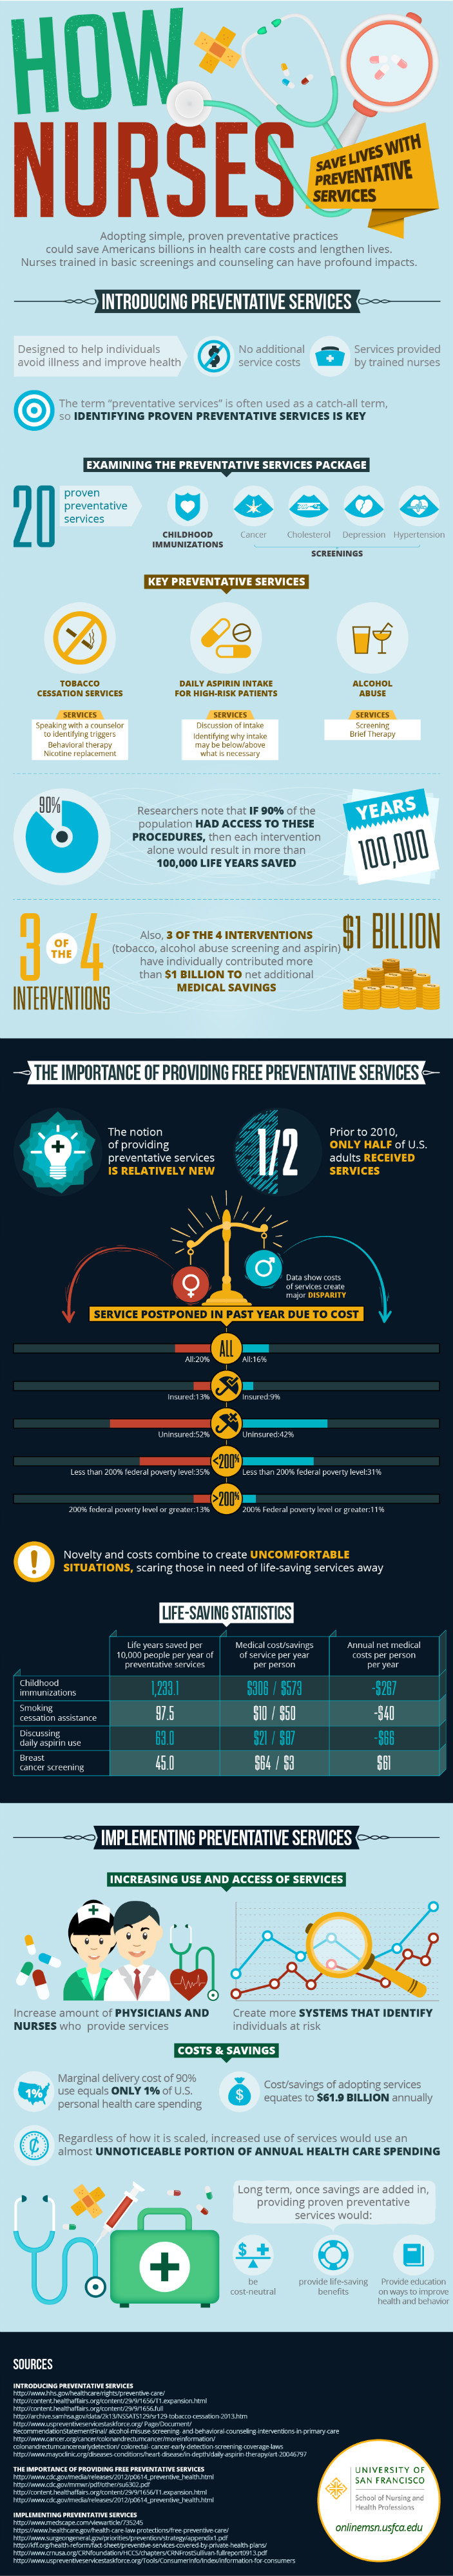 Nurses Play Crucial Role In Preventative Health Services [Infographic]